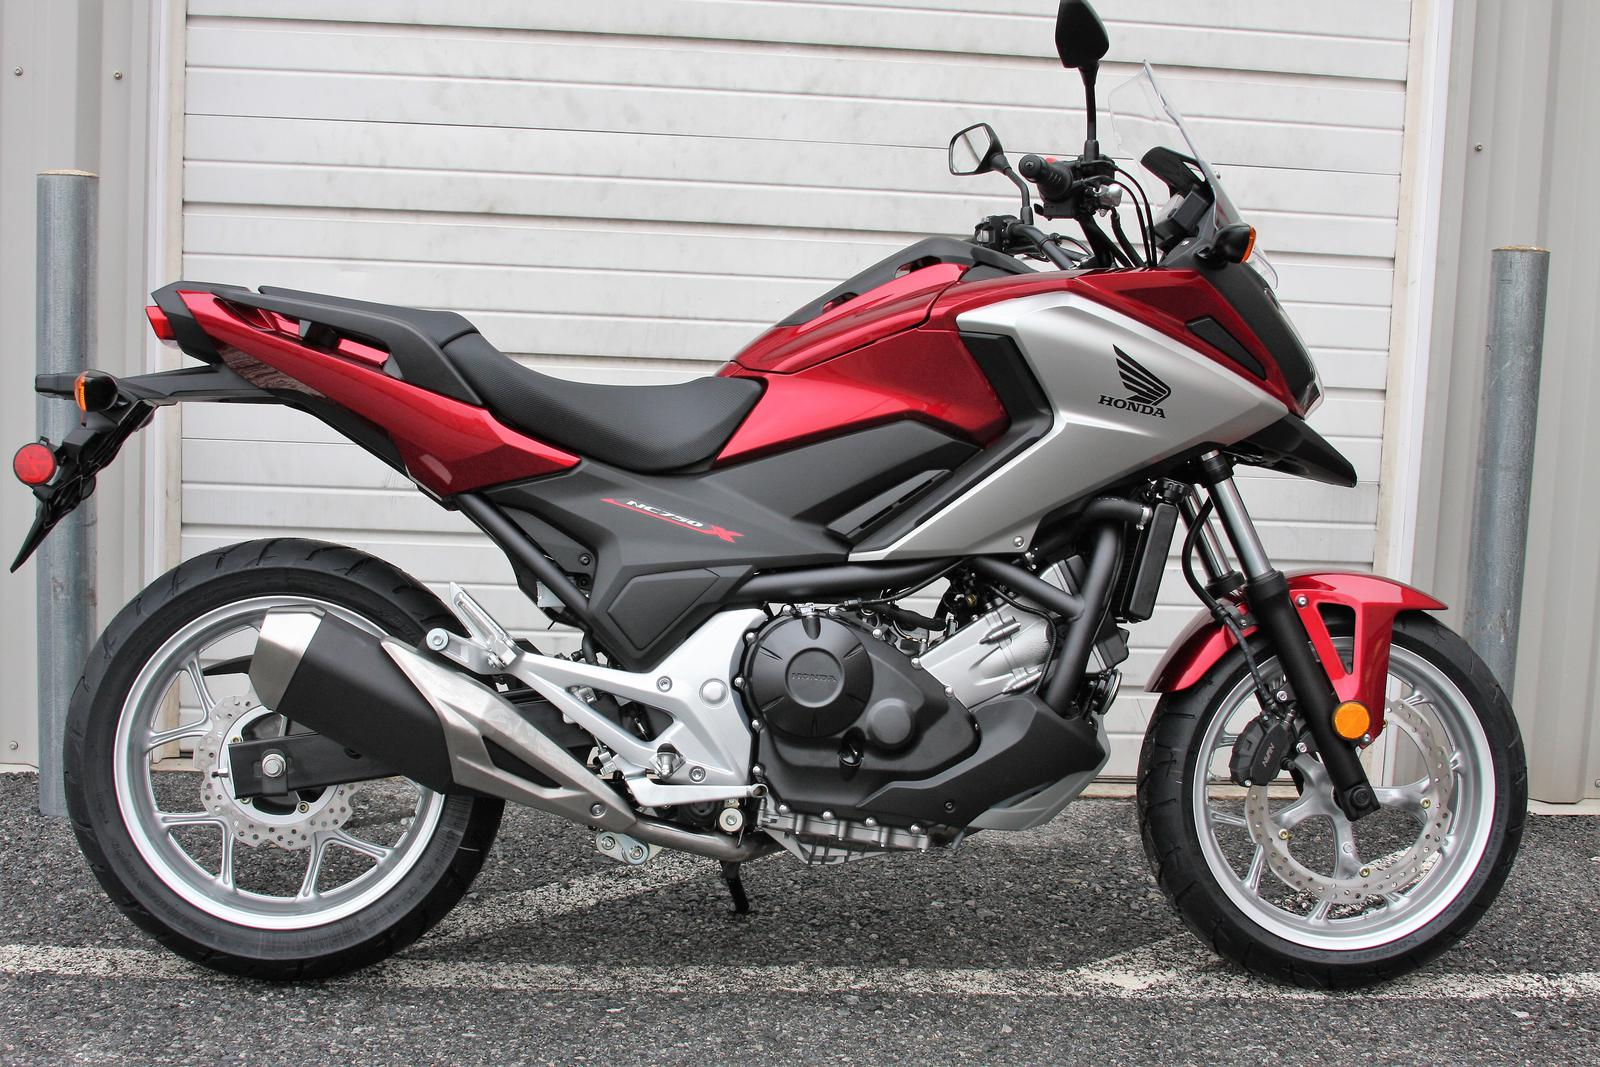 2018 Honda Nc750x For Sale In York Pa Ams Action Motorsports York